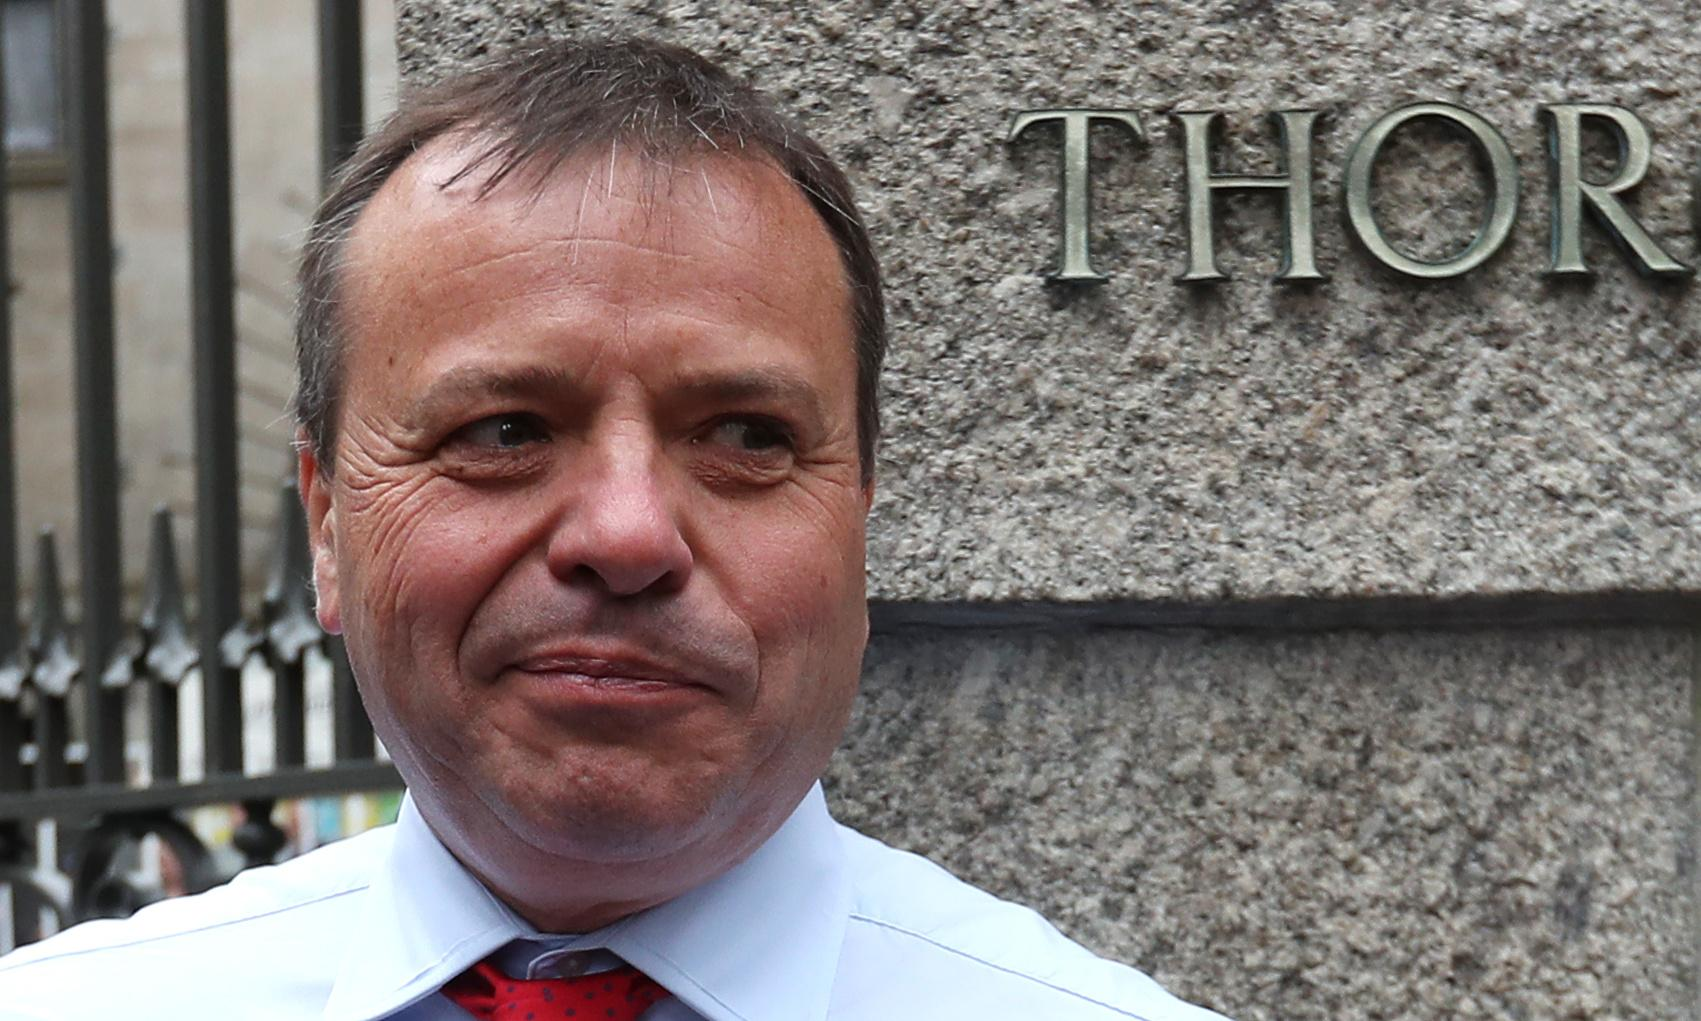 The Guardian view on Arron Banks: where did the money come from?